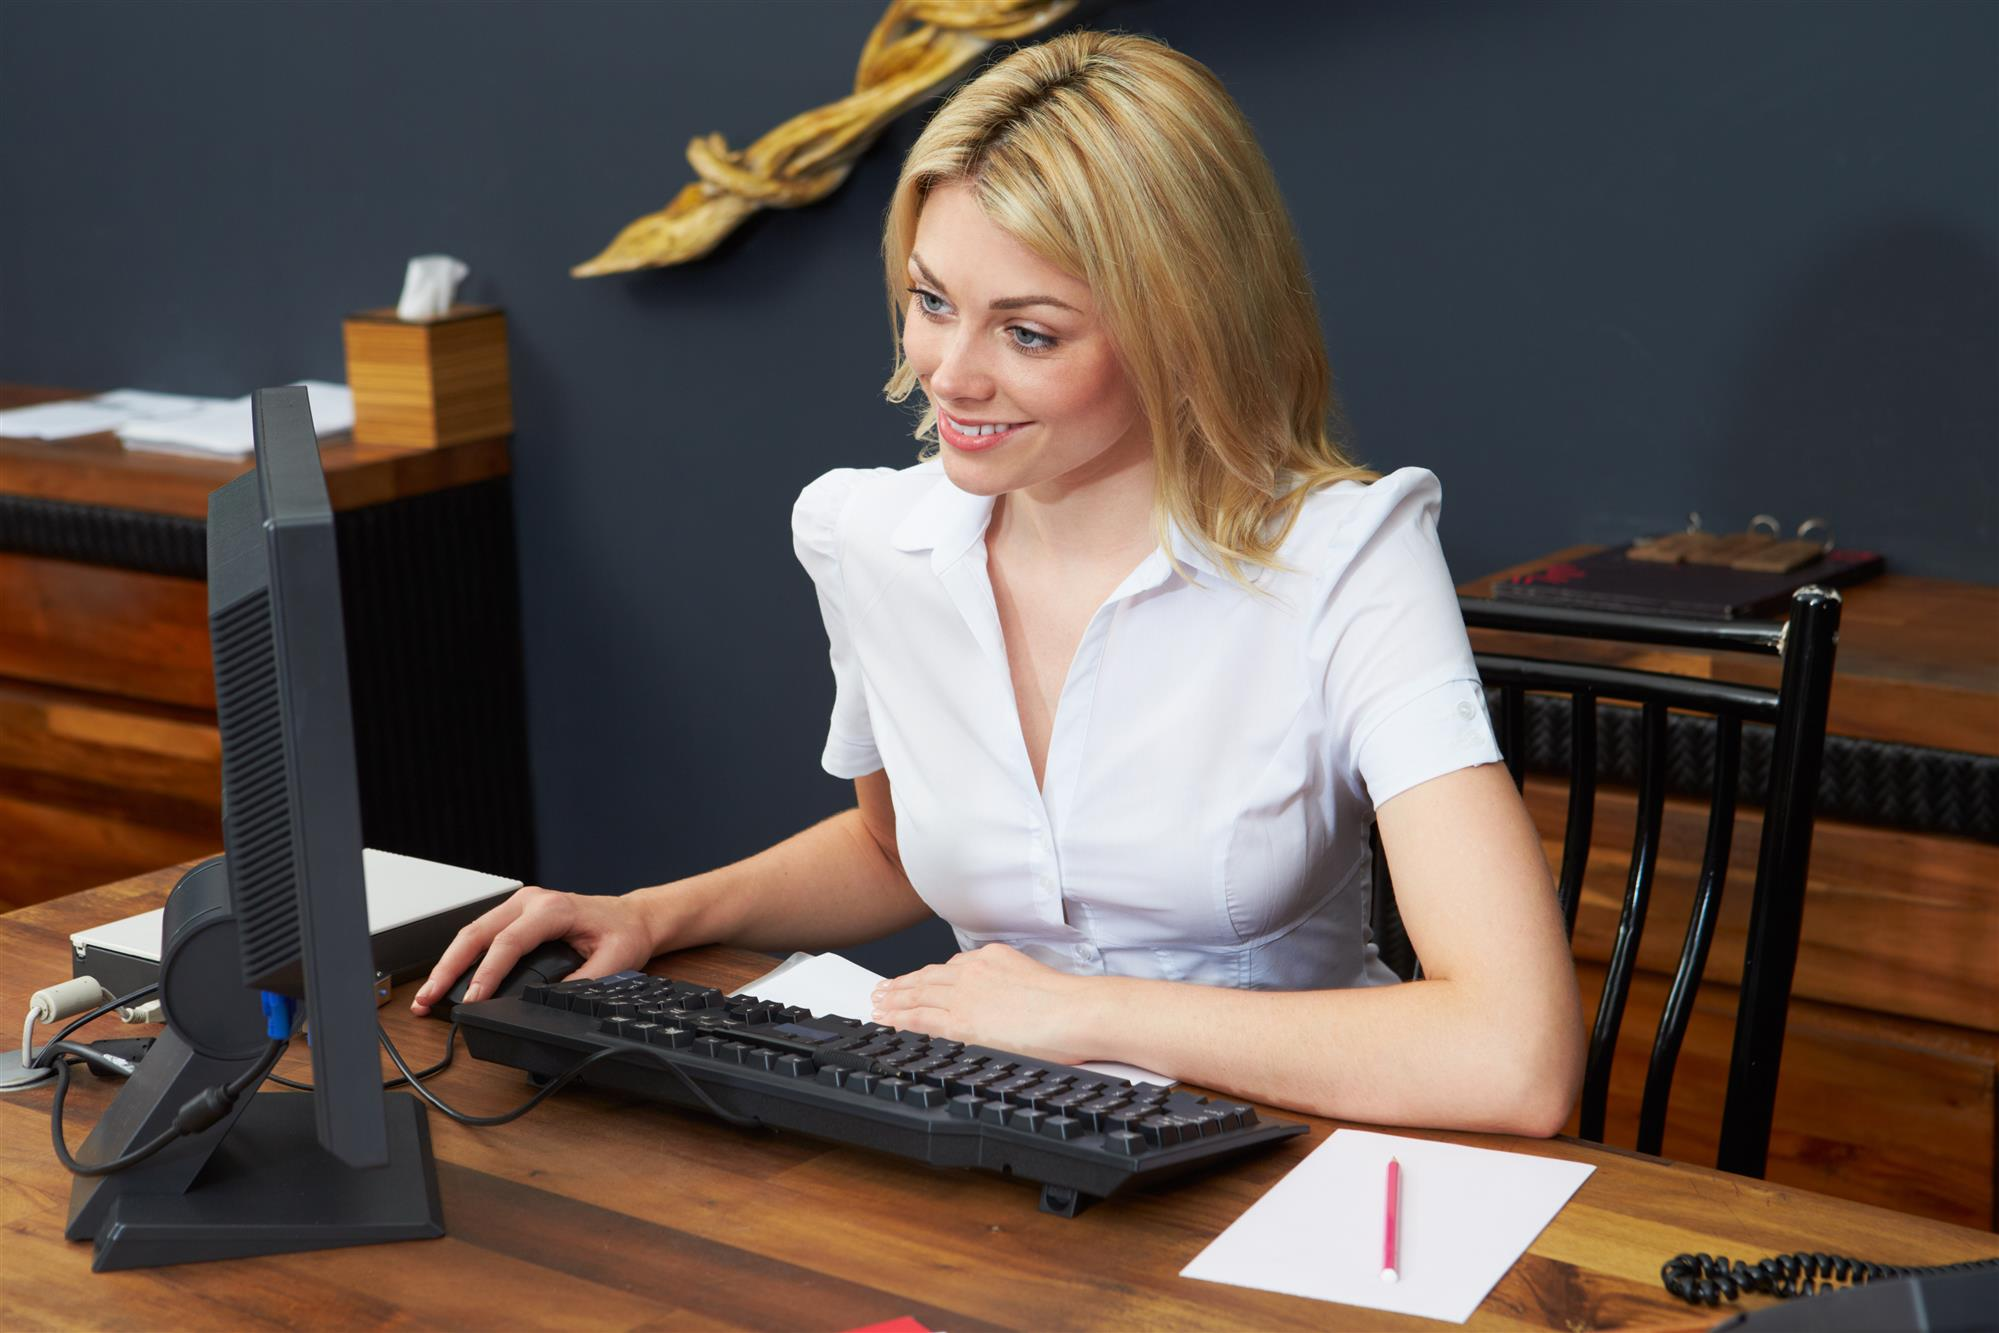 Six WorkfromHomeJobs for Administrative Assistants